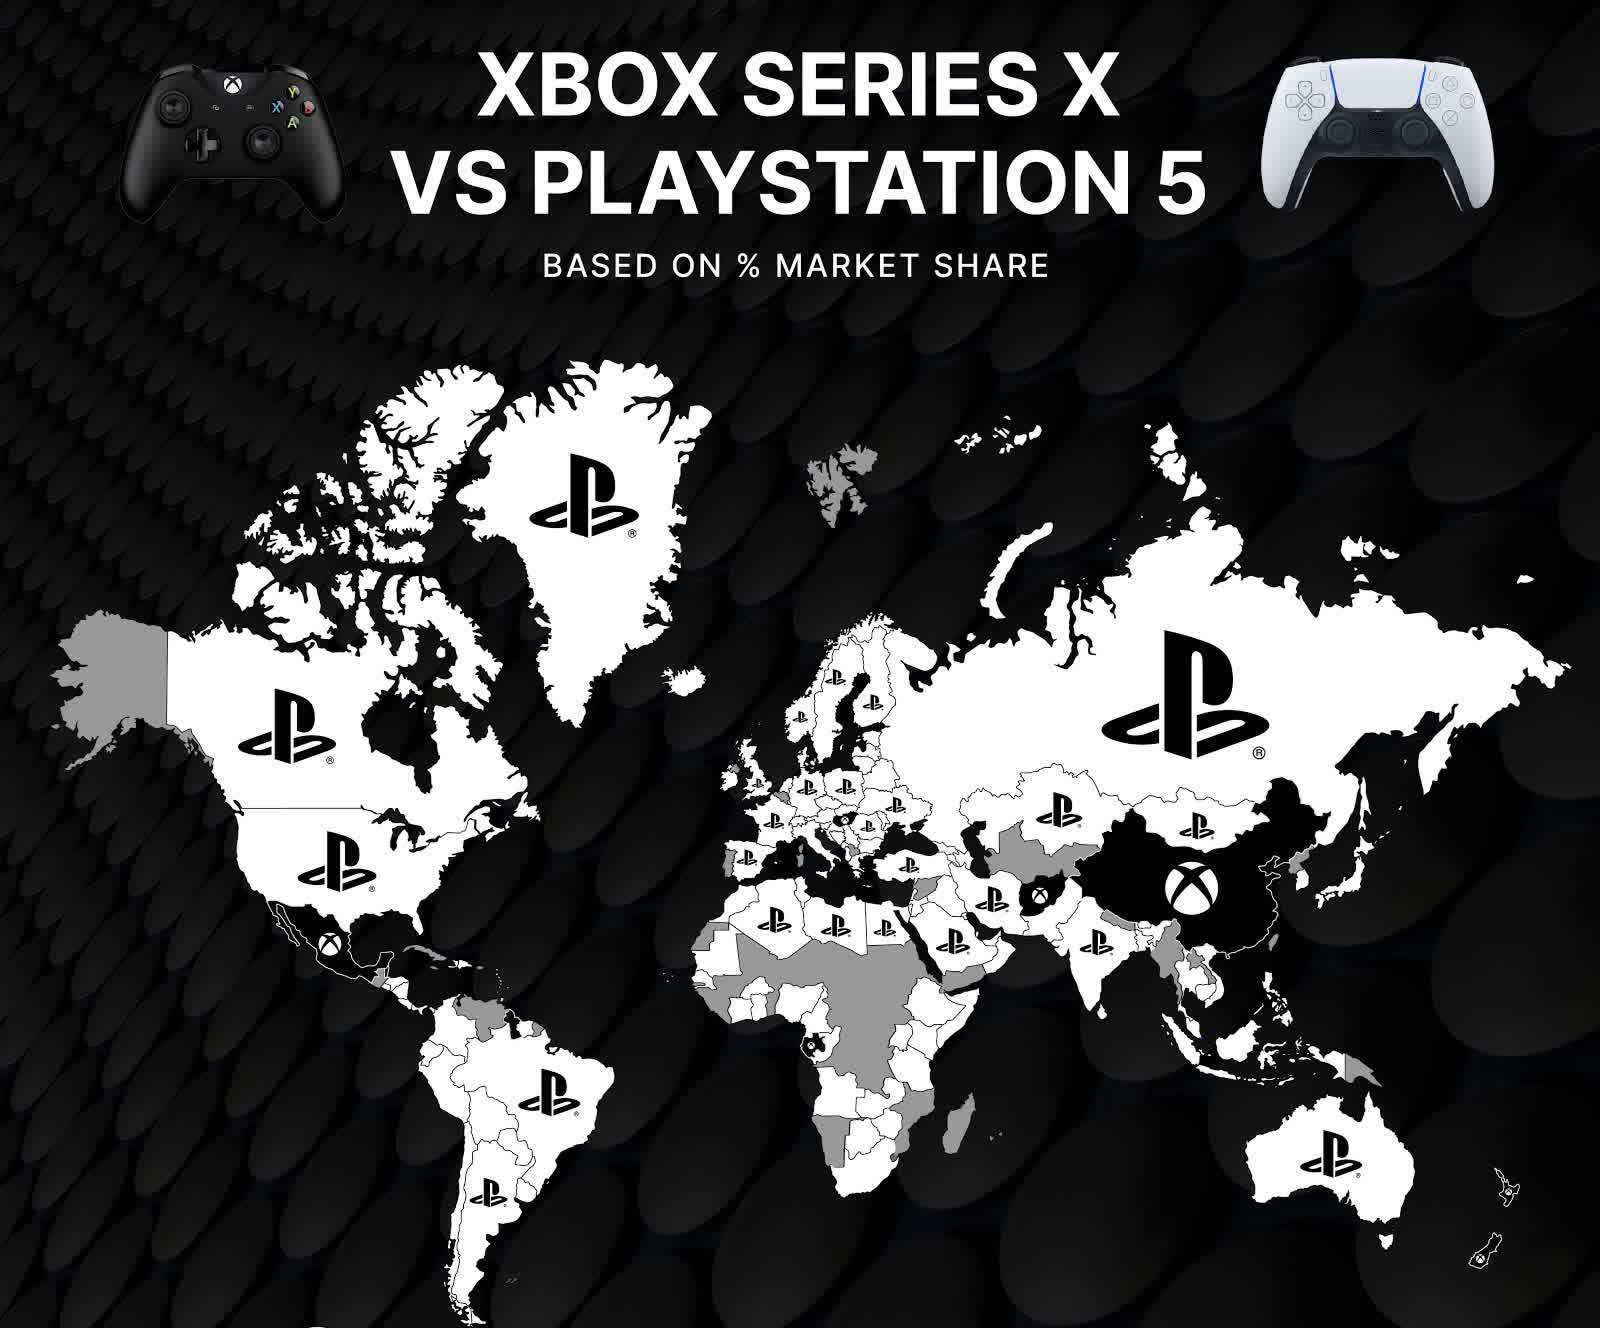 World map of PS5 and XBSX demand shows Sony coming out on top worldwide